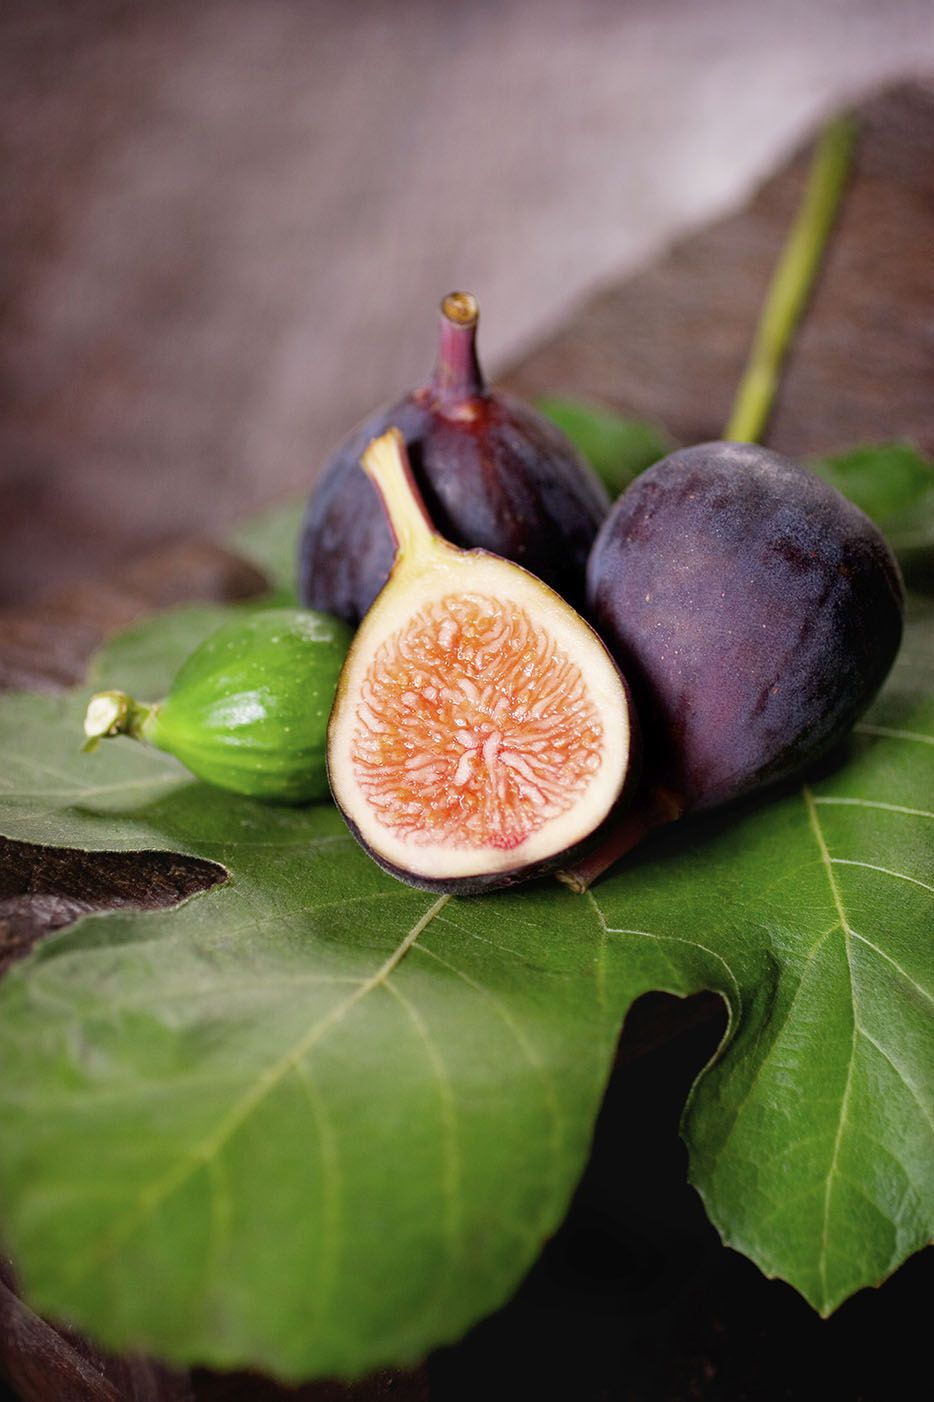 How To Grow Fig Fig Tree At Home Fig Growing Guide Fig Plant Fig Tree In A Container Fig Tree Fruit Trees For Sale Fruit